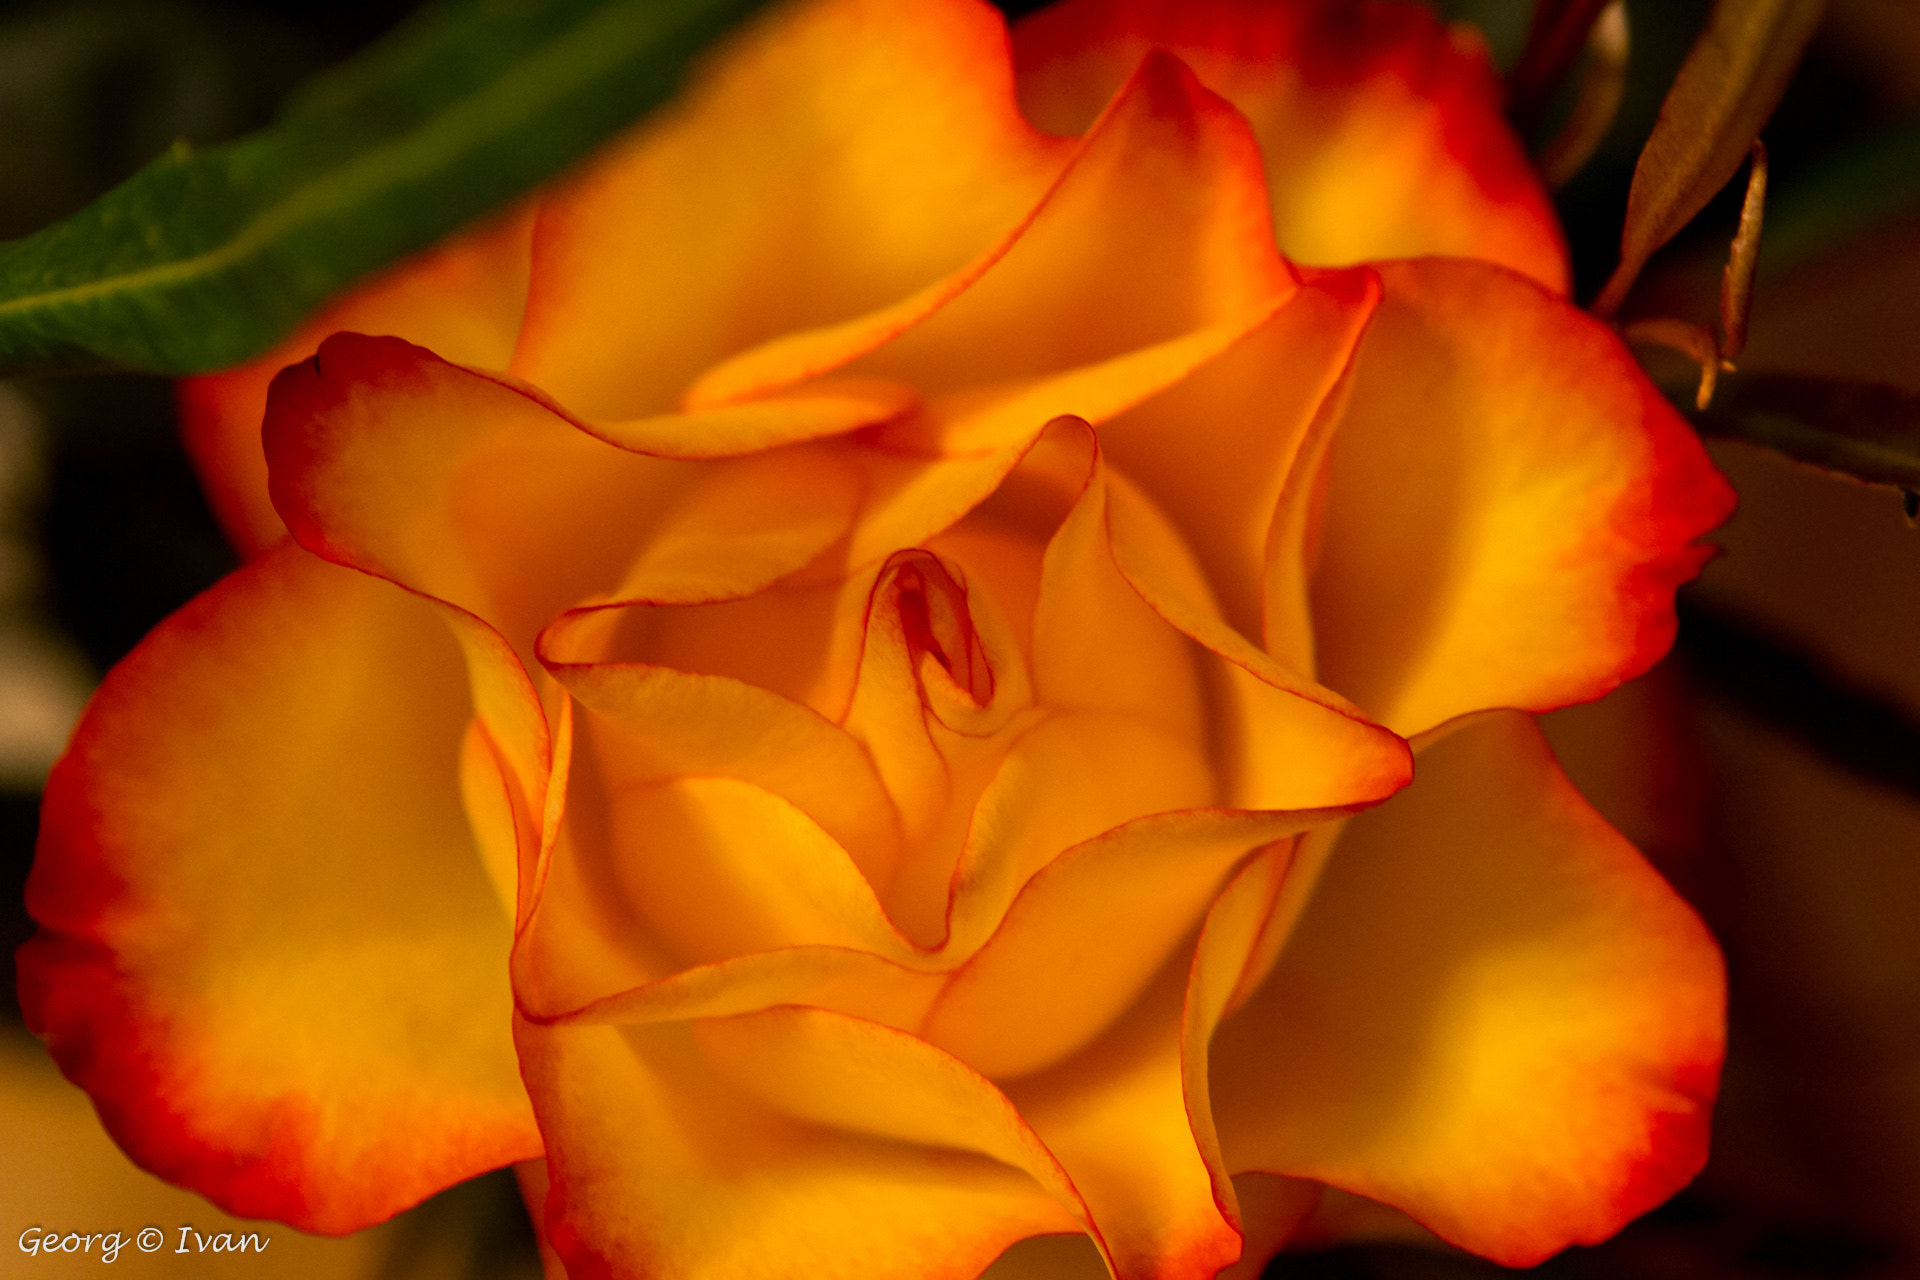 Photograph Red Yello Rose II by Georg Ivan on 500px